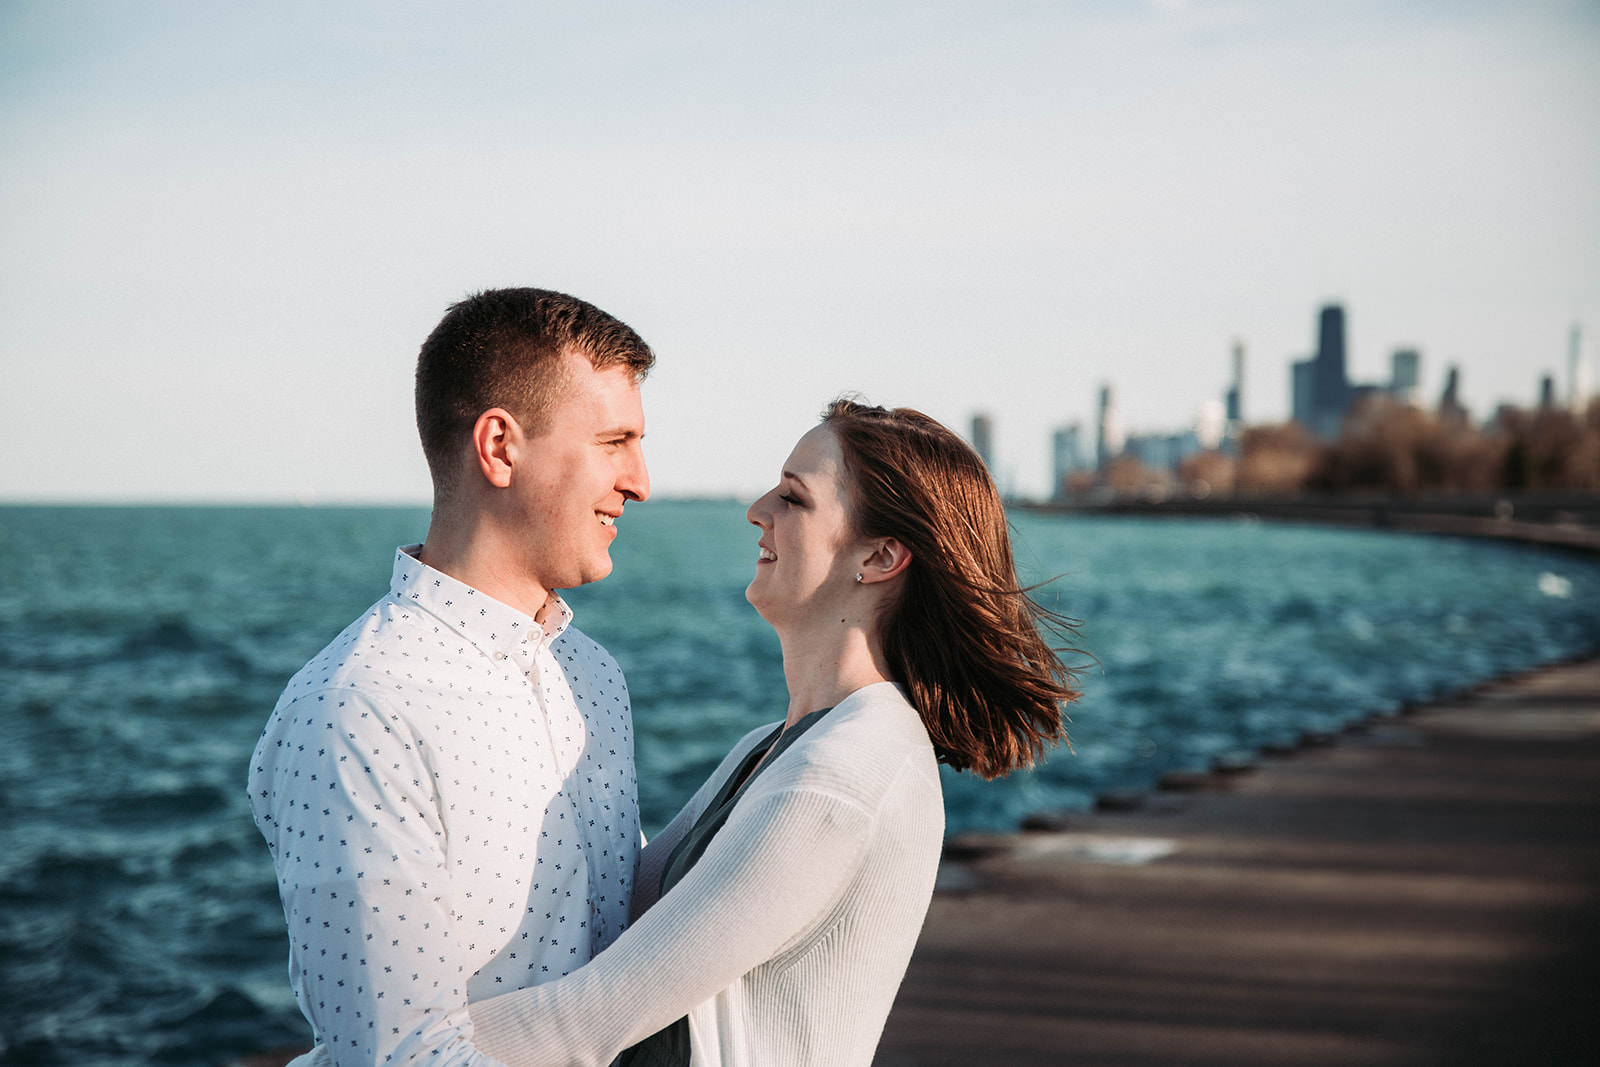 Downtown_chicago_spring_engagement_session-15.jpg